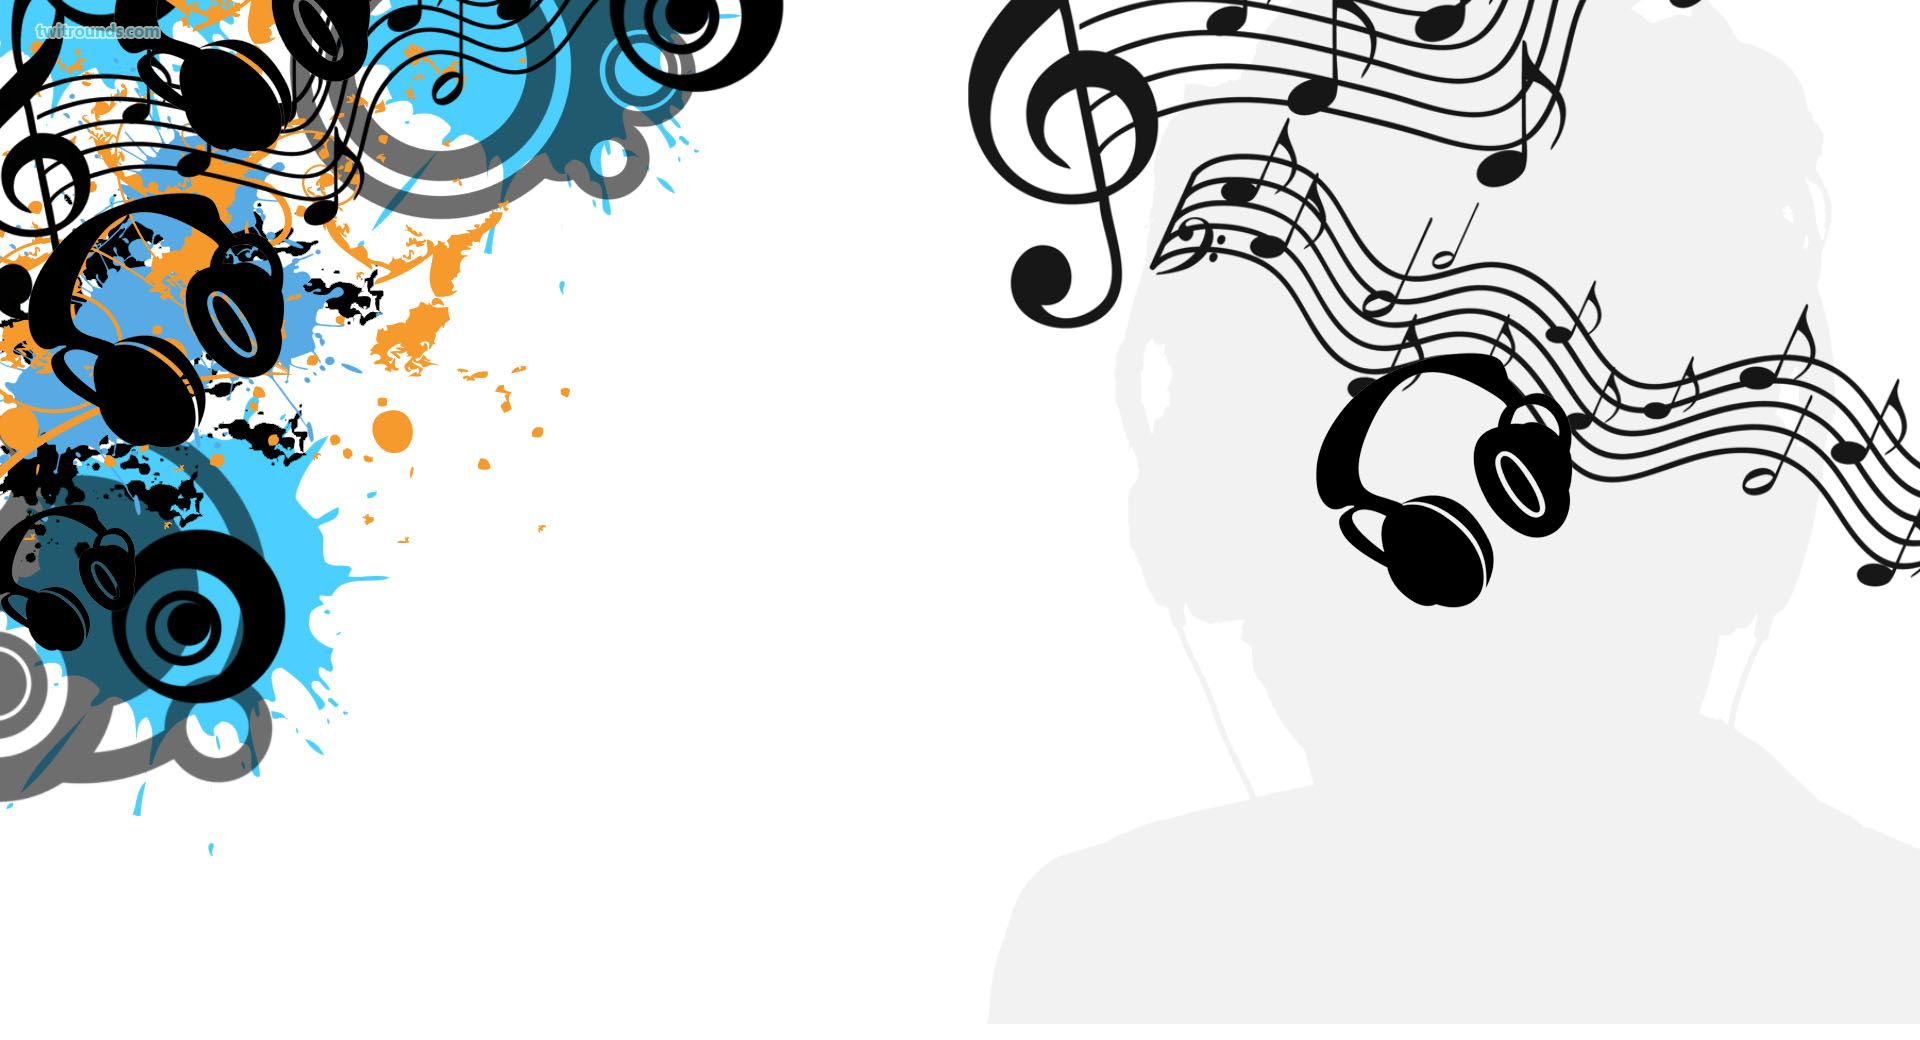 Drawn musician twitter backgrounds For Music  Background Backgrounds